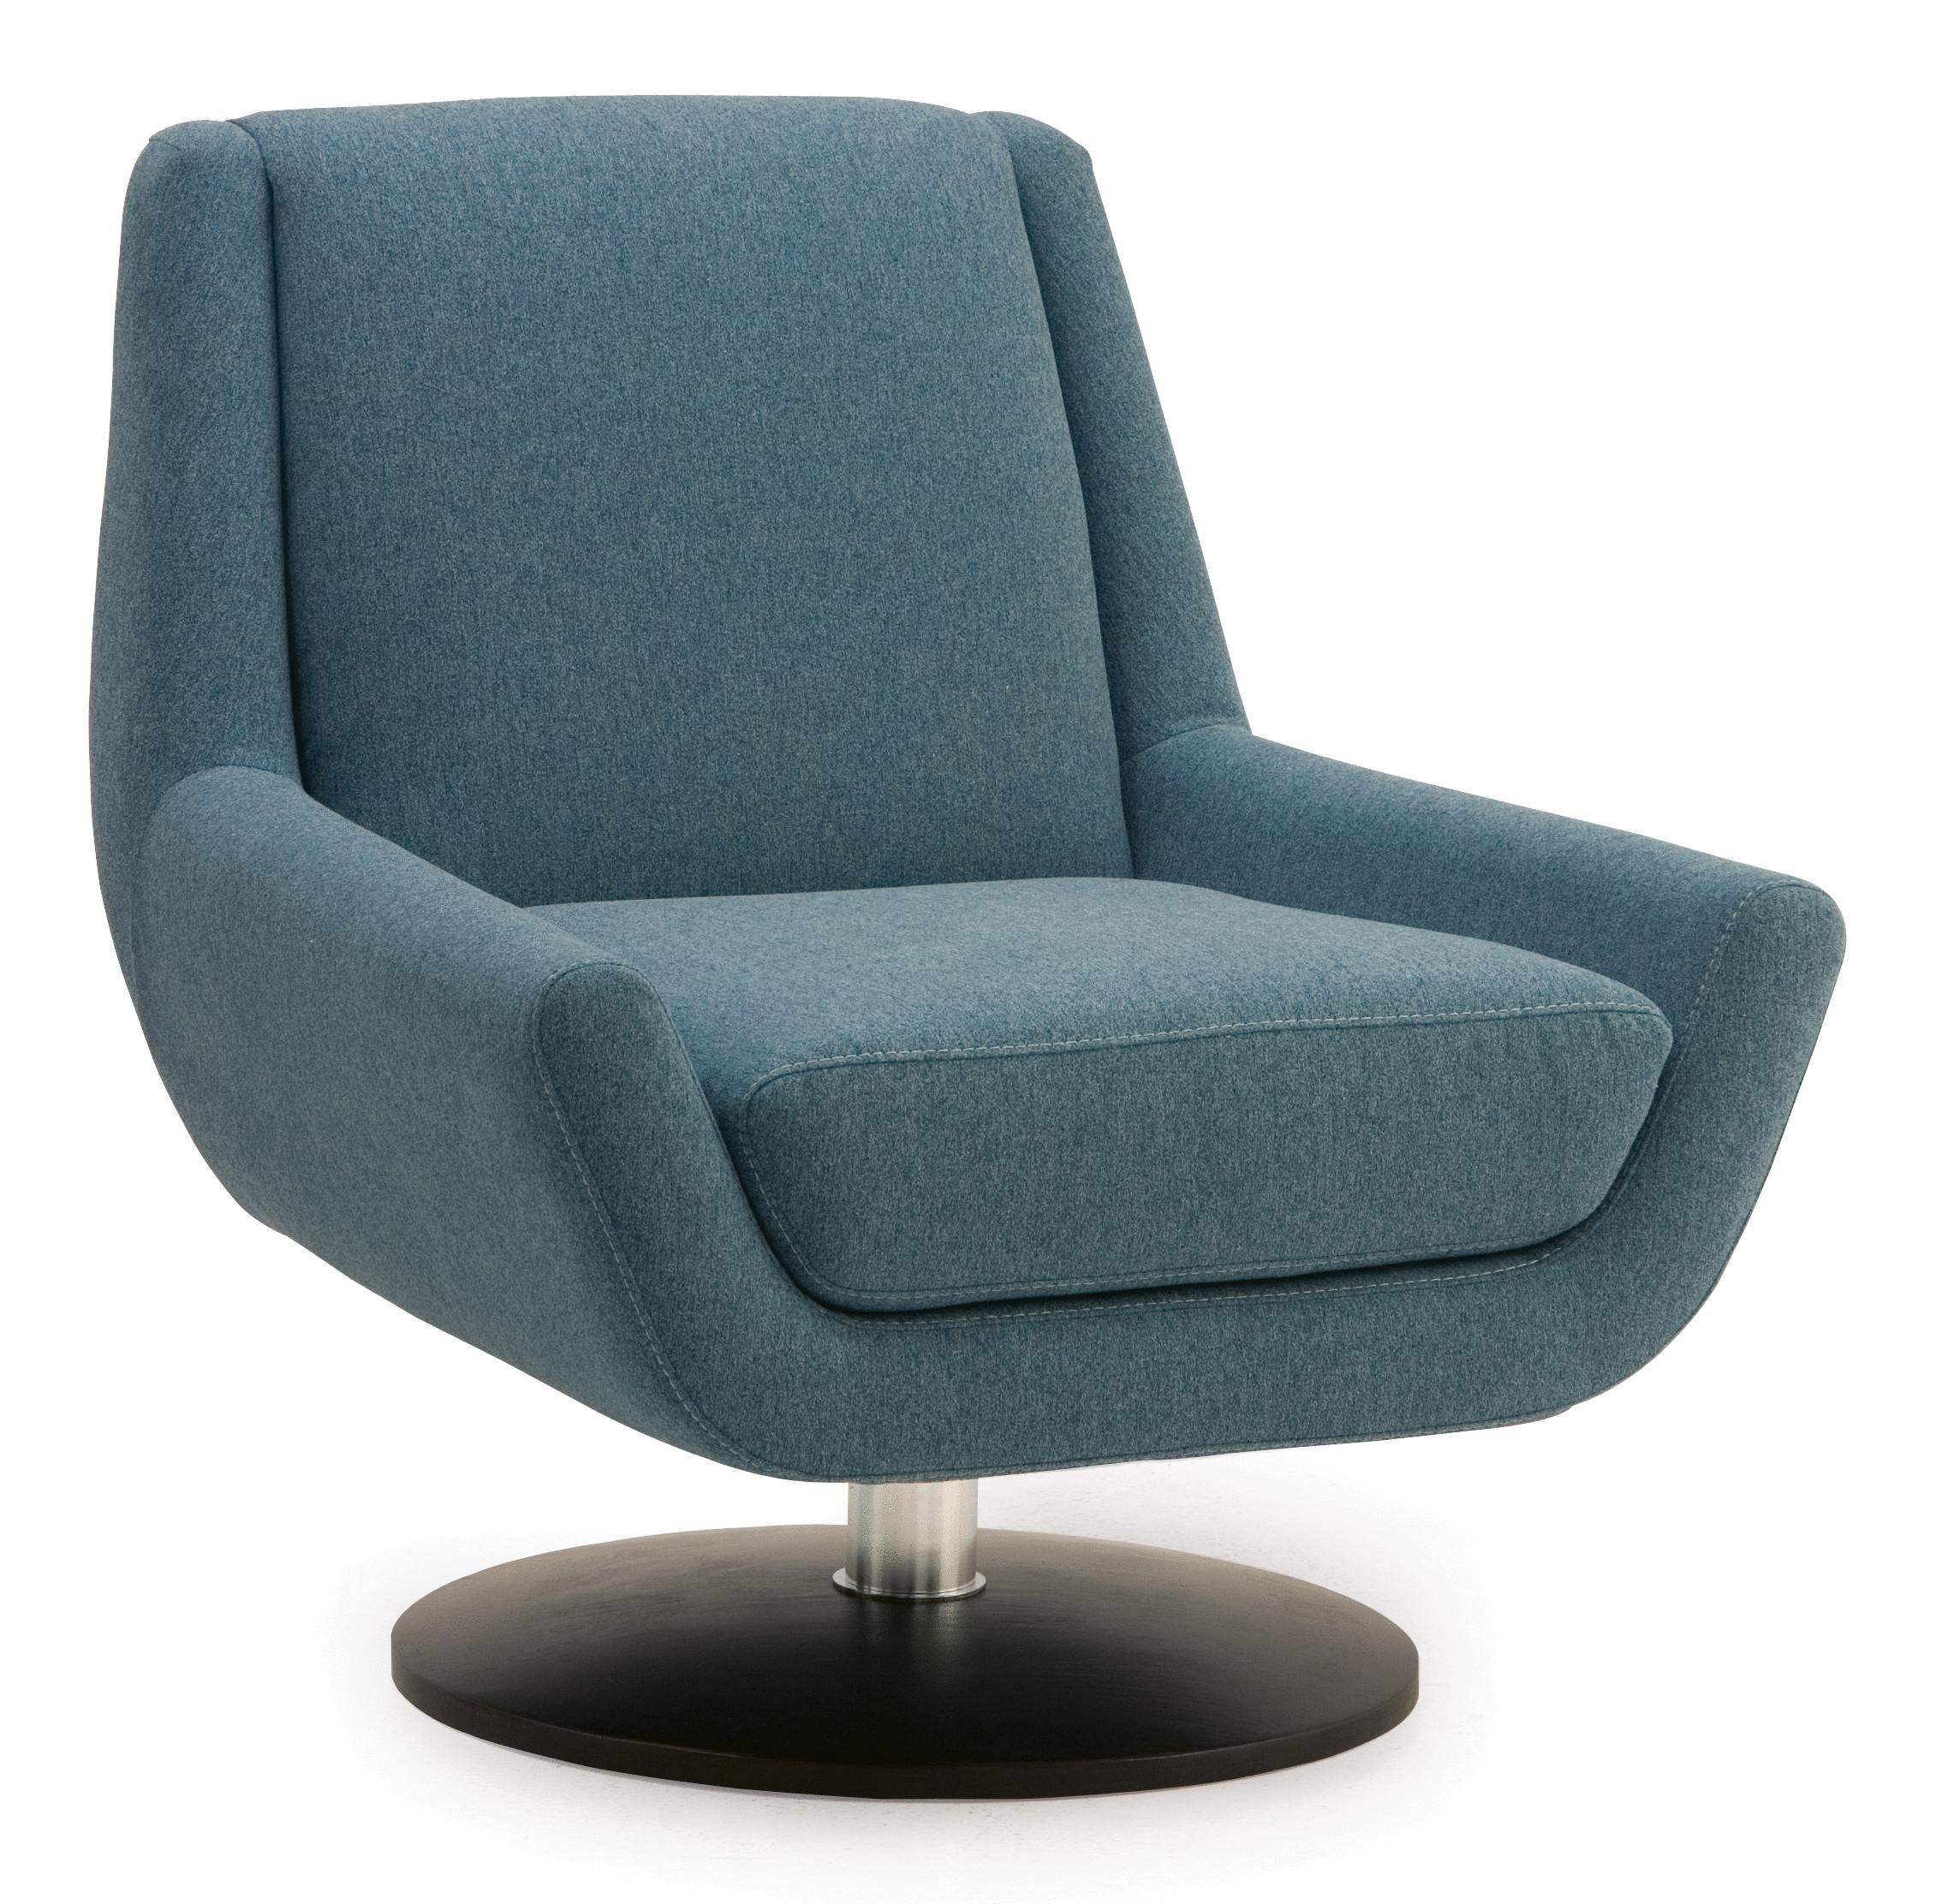 Palliser Plato Contemporary Swivel Chair with Metal Base Dunk